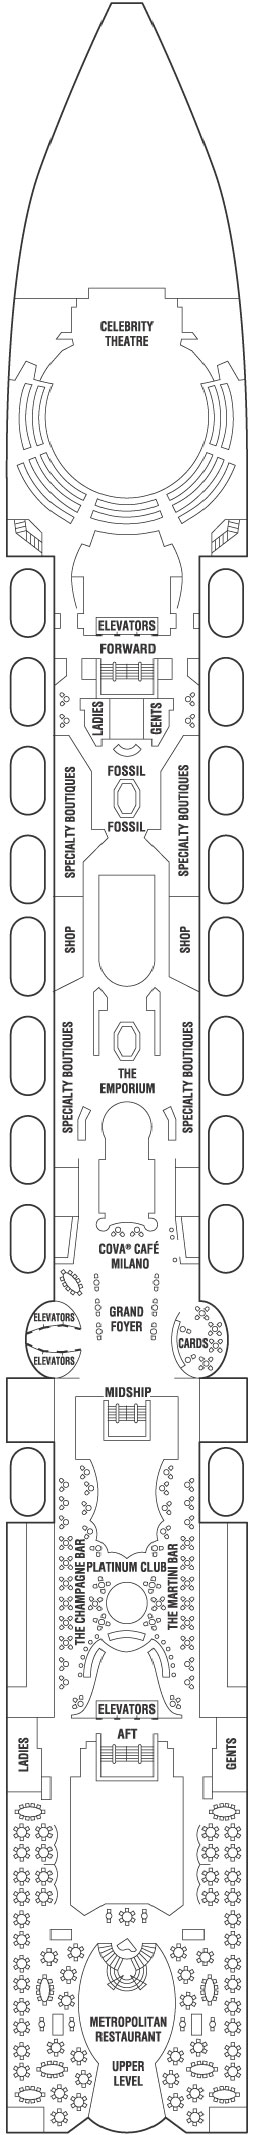 Celebrity Millennium Entertainment Deck layout